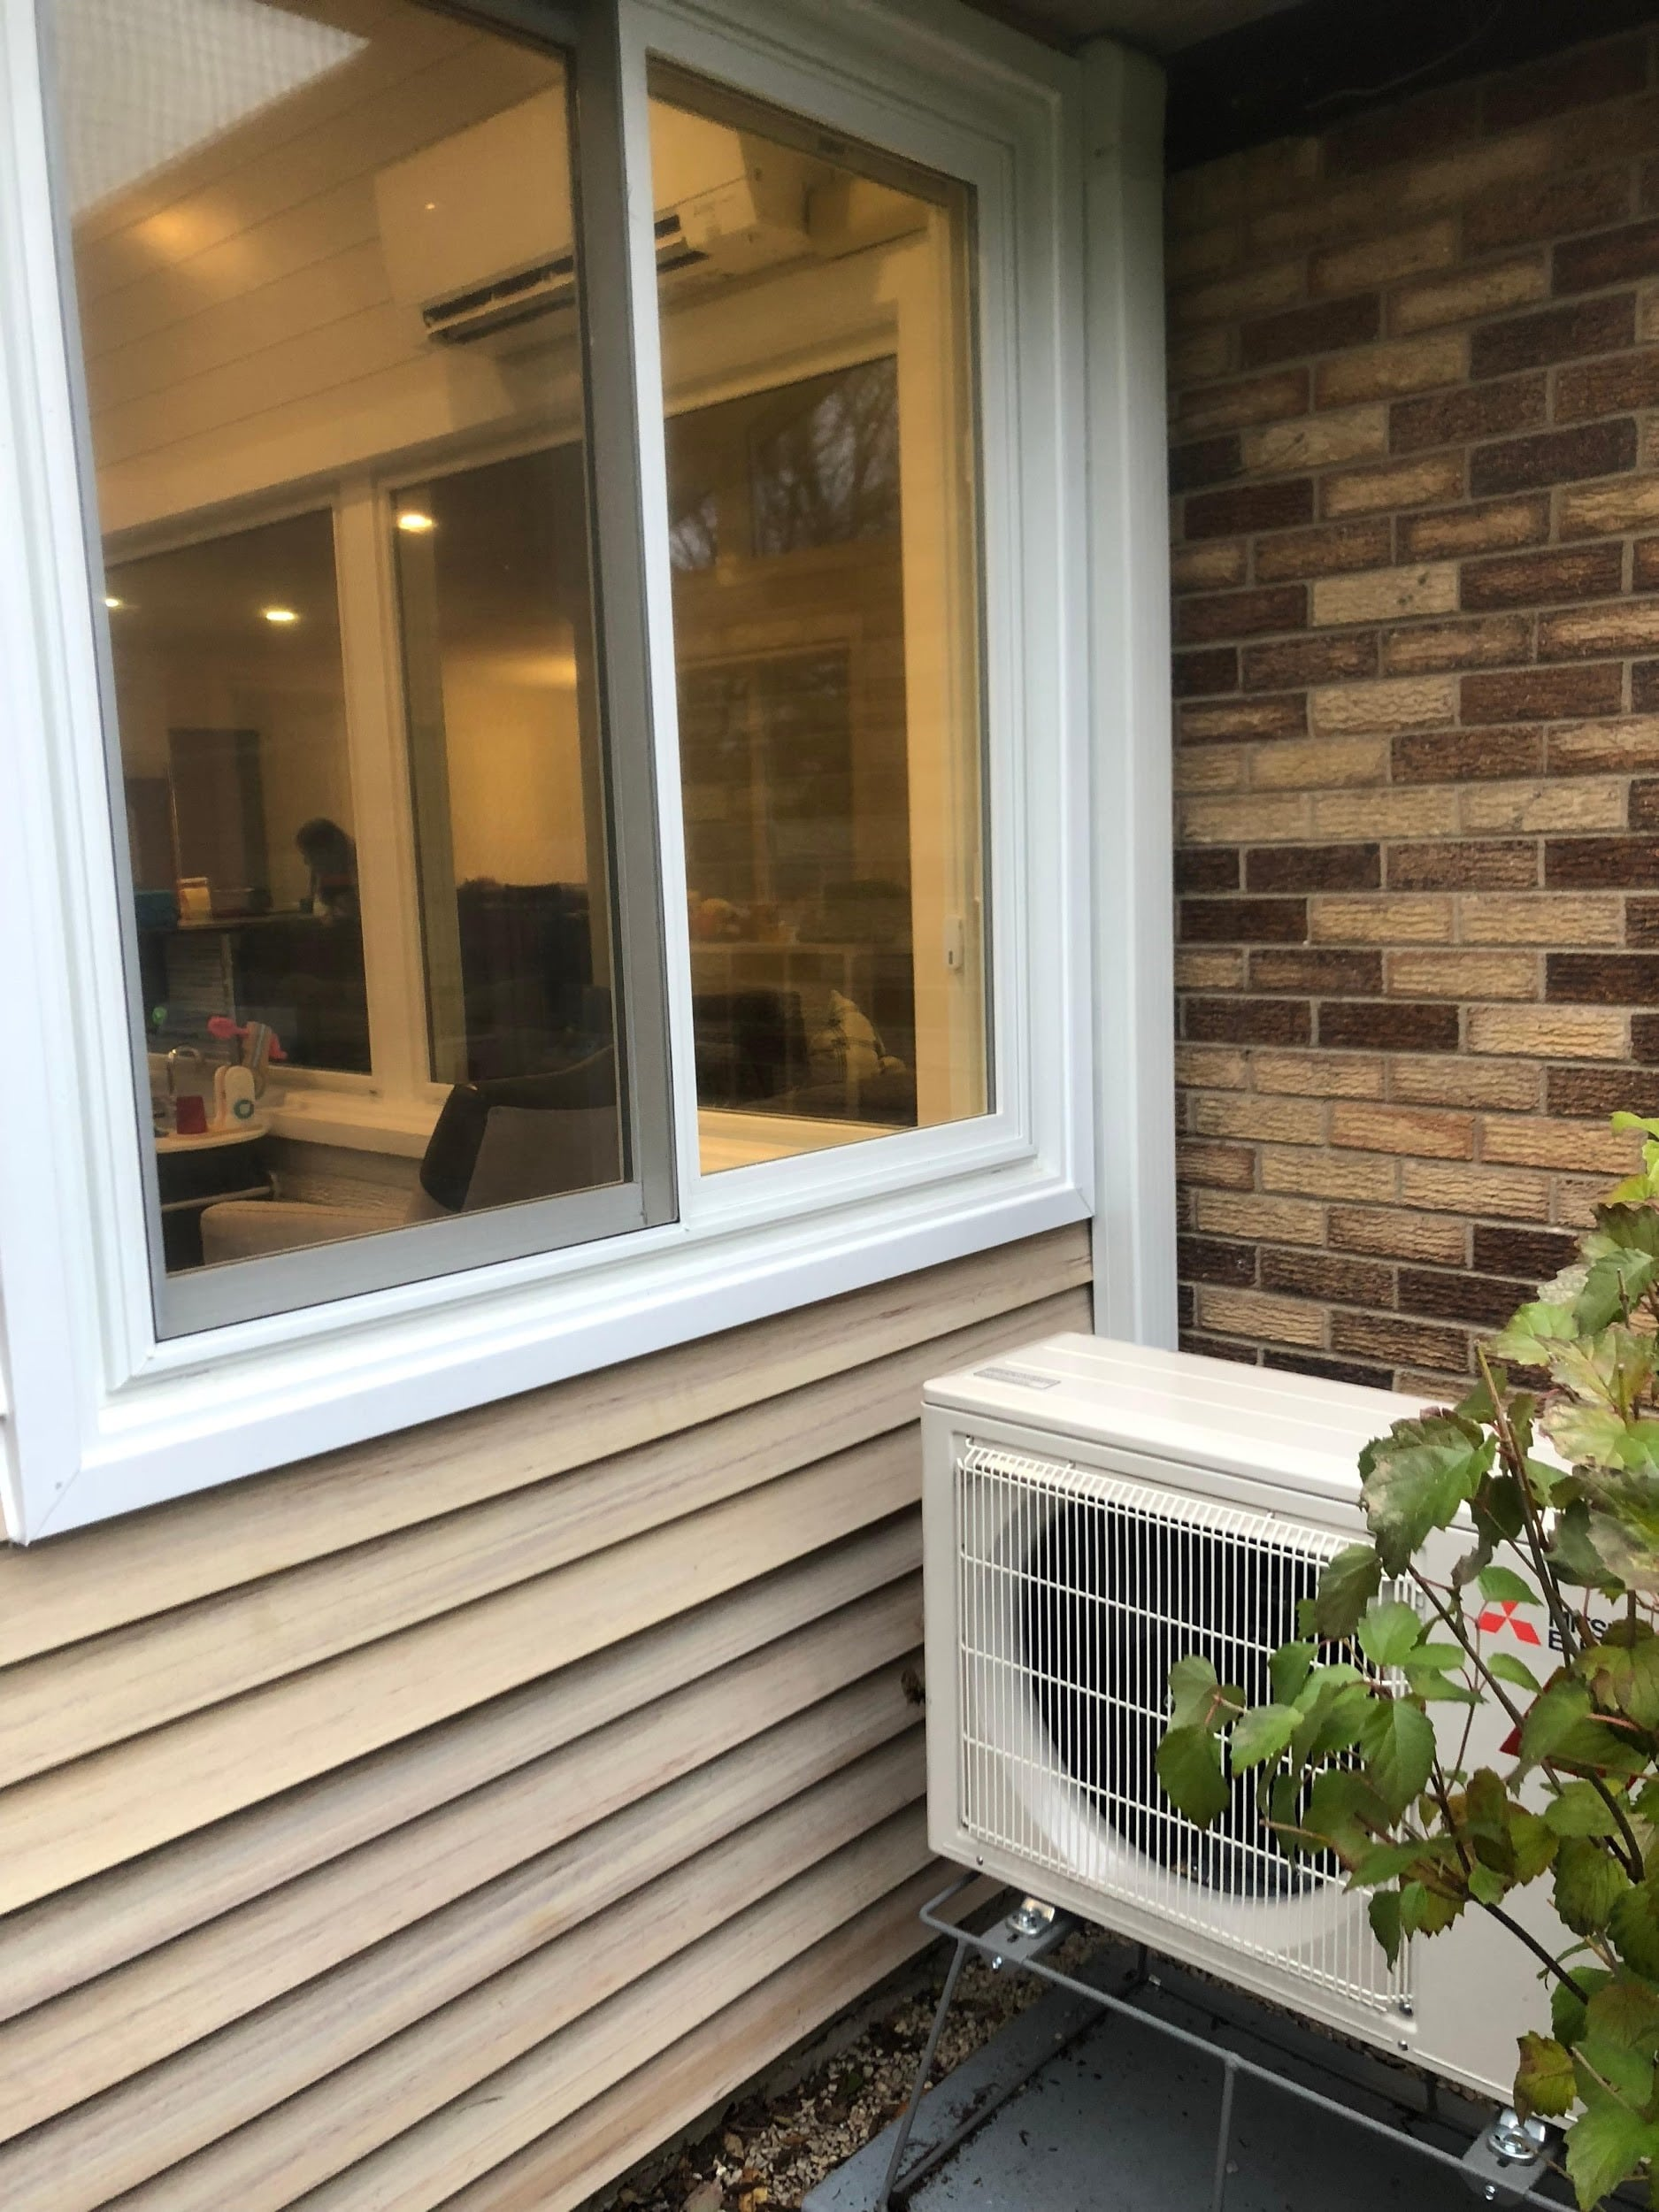 A heat pump provides heat and ac for a Wheaton, IL sunroom.